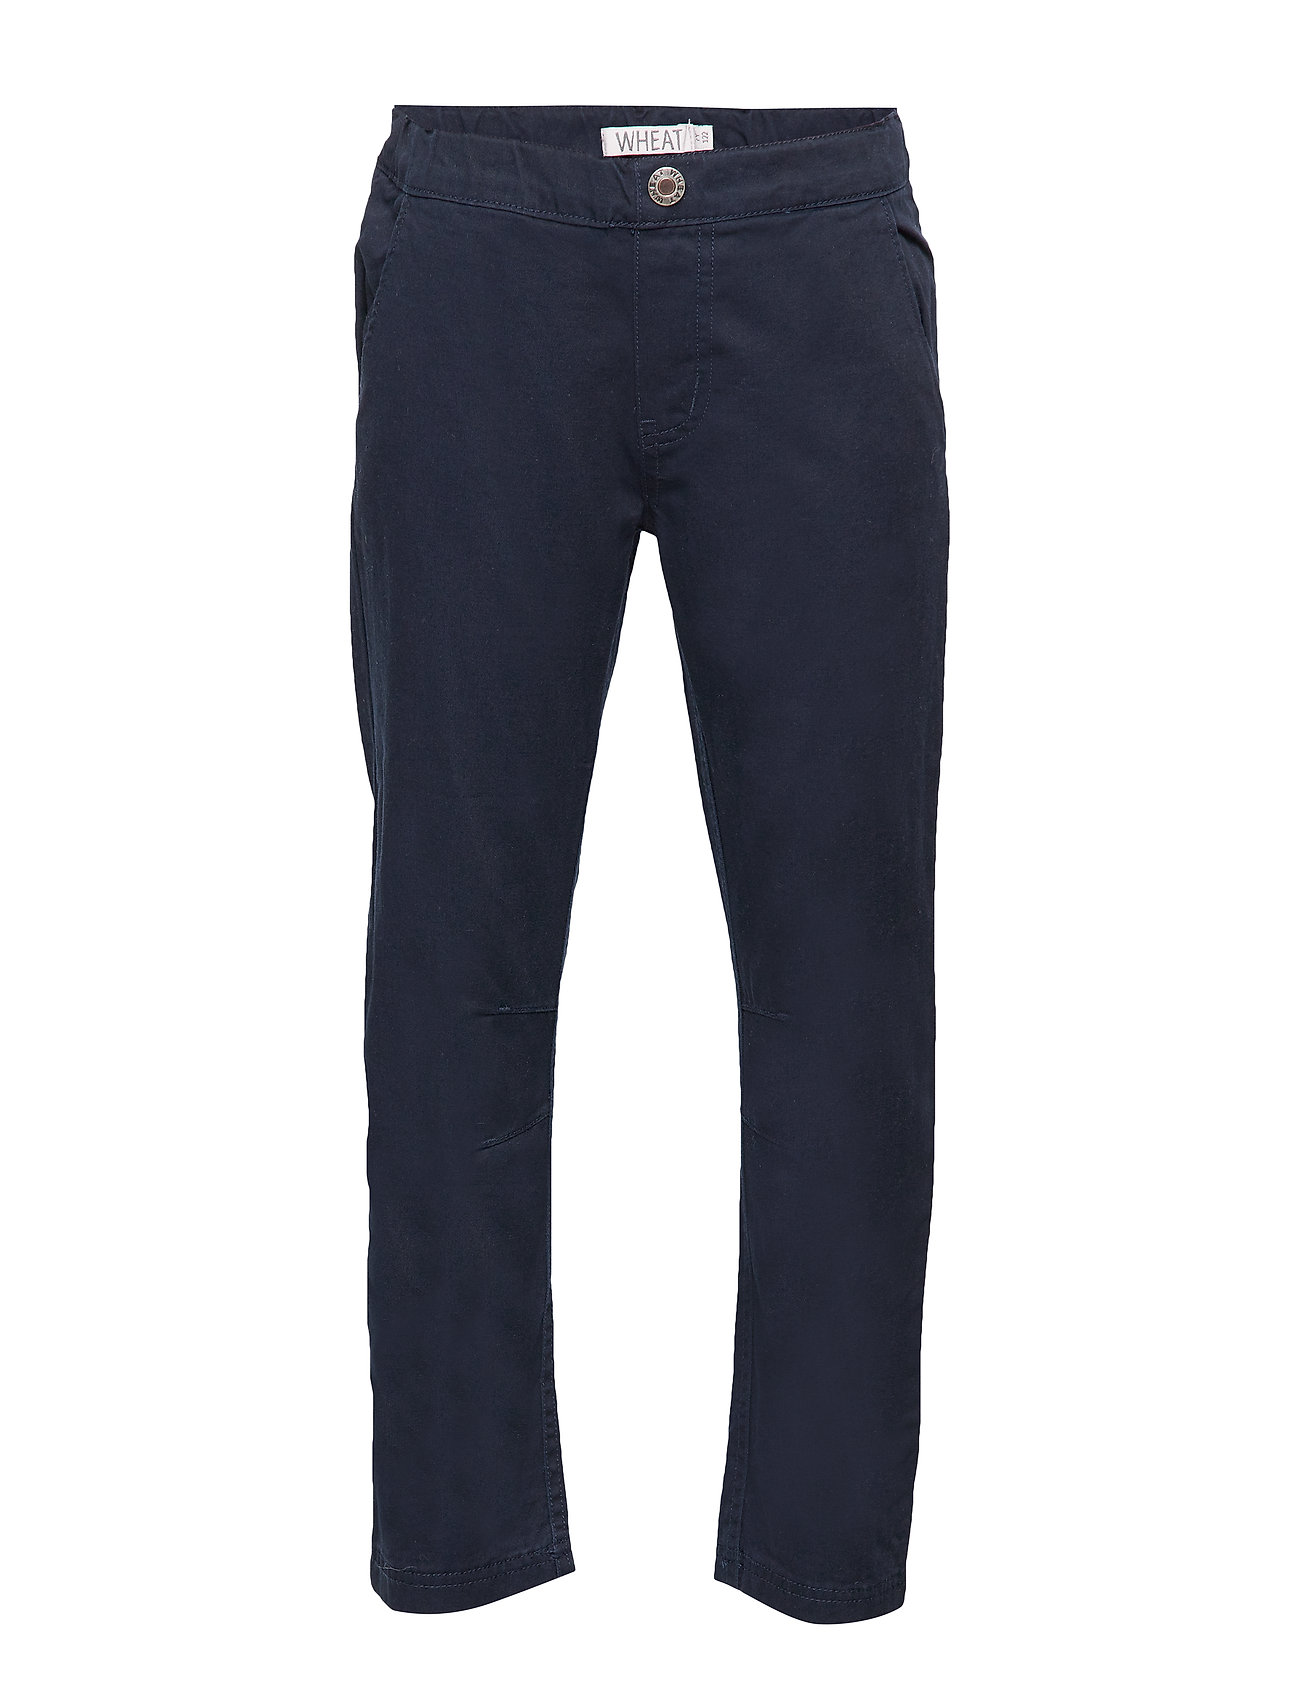 Wheat Trousers Noah Lined - NAVY